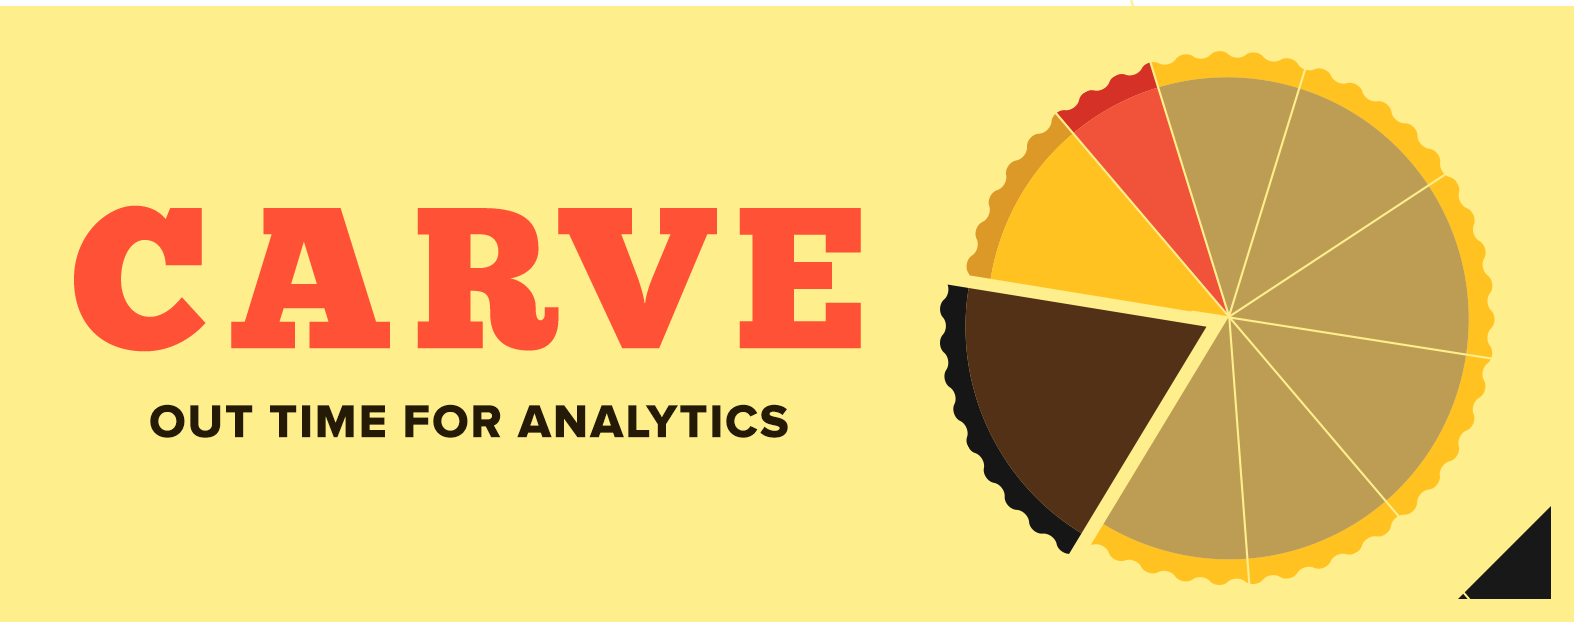 Carve Out Time for Analytics